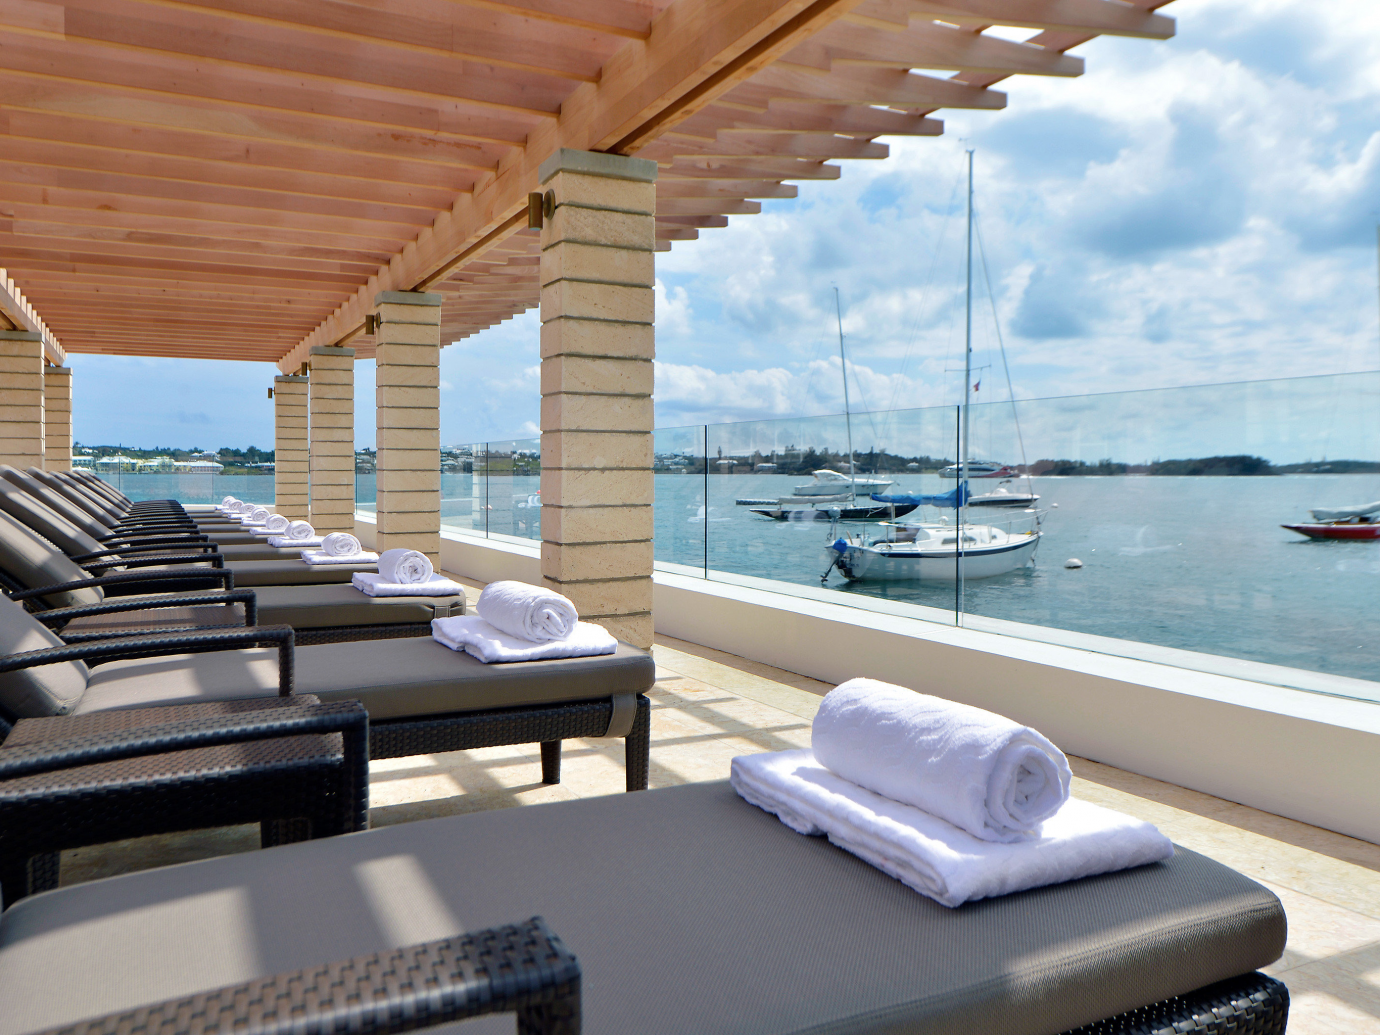 Outdoor lounge area overlooking boats at Hamilton Princess